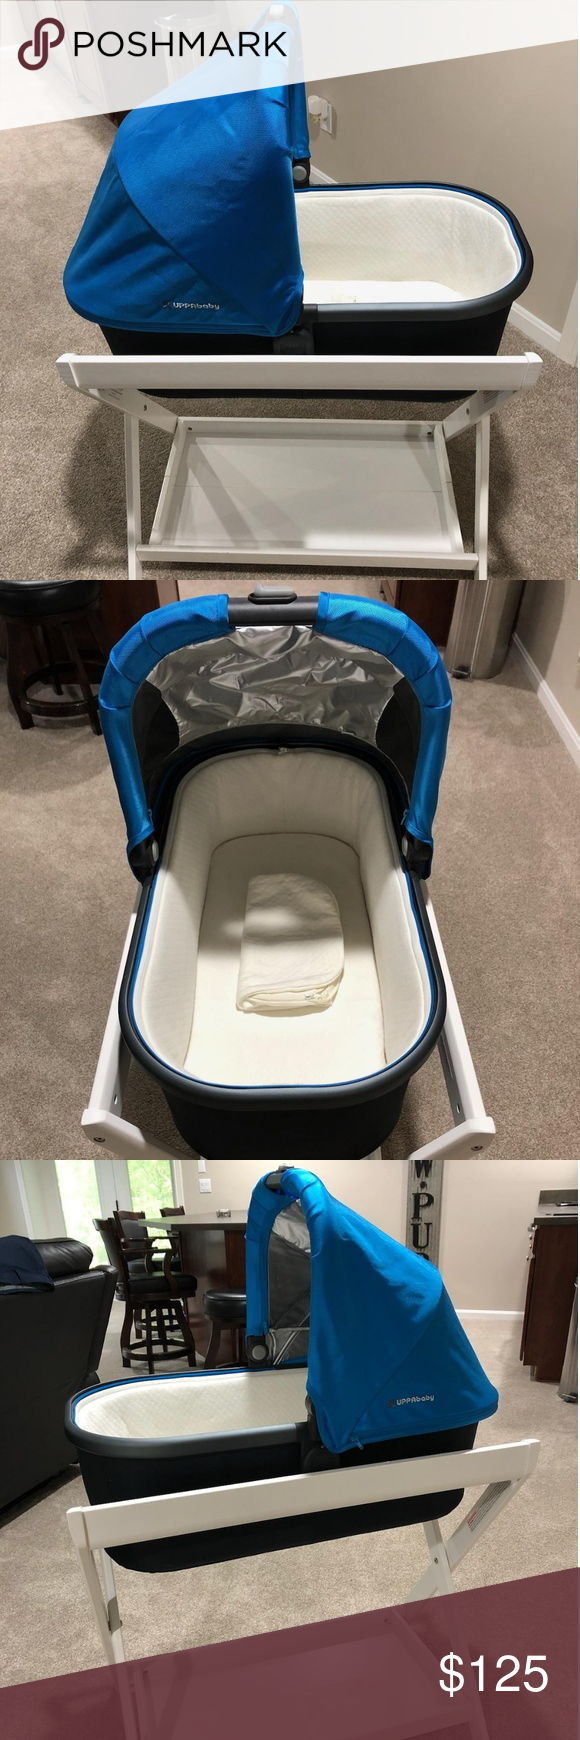 Uppababy Like new! Excellent condition